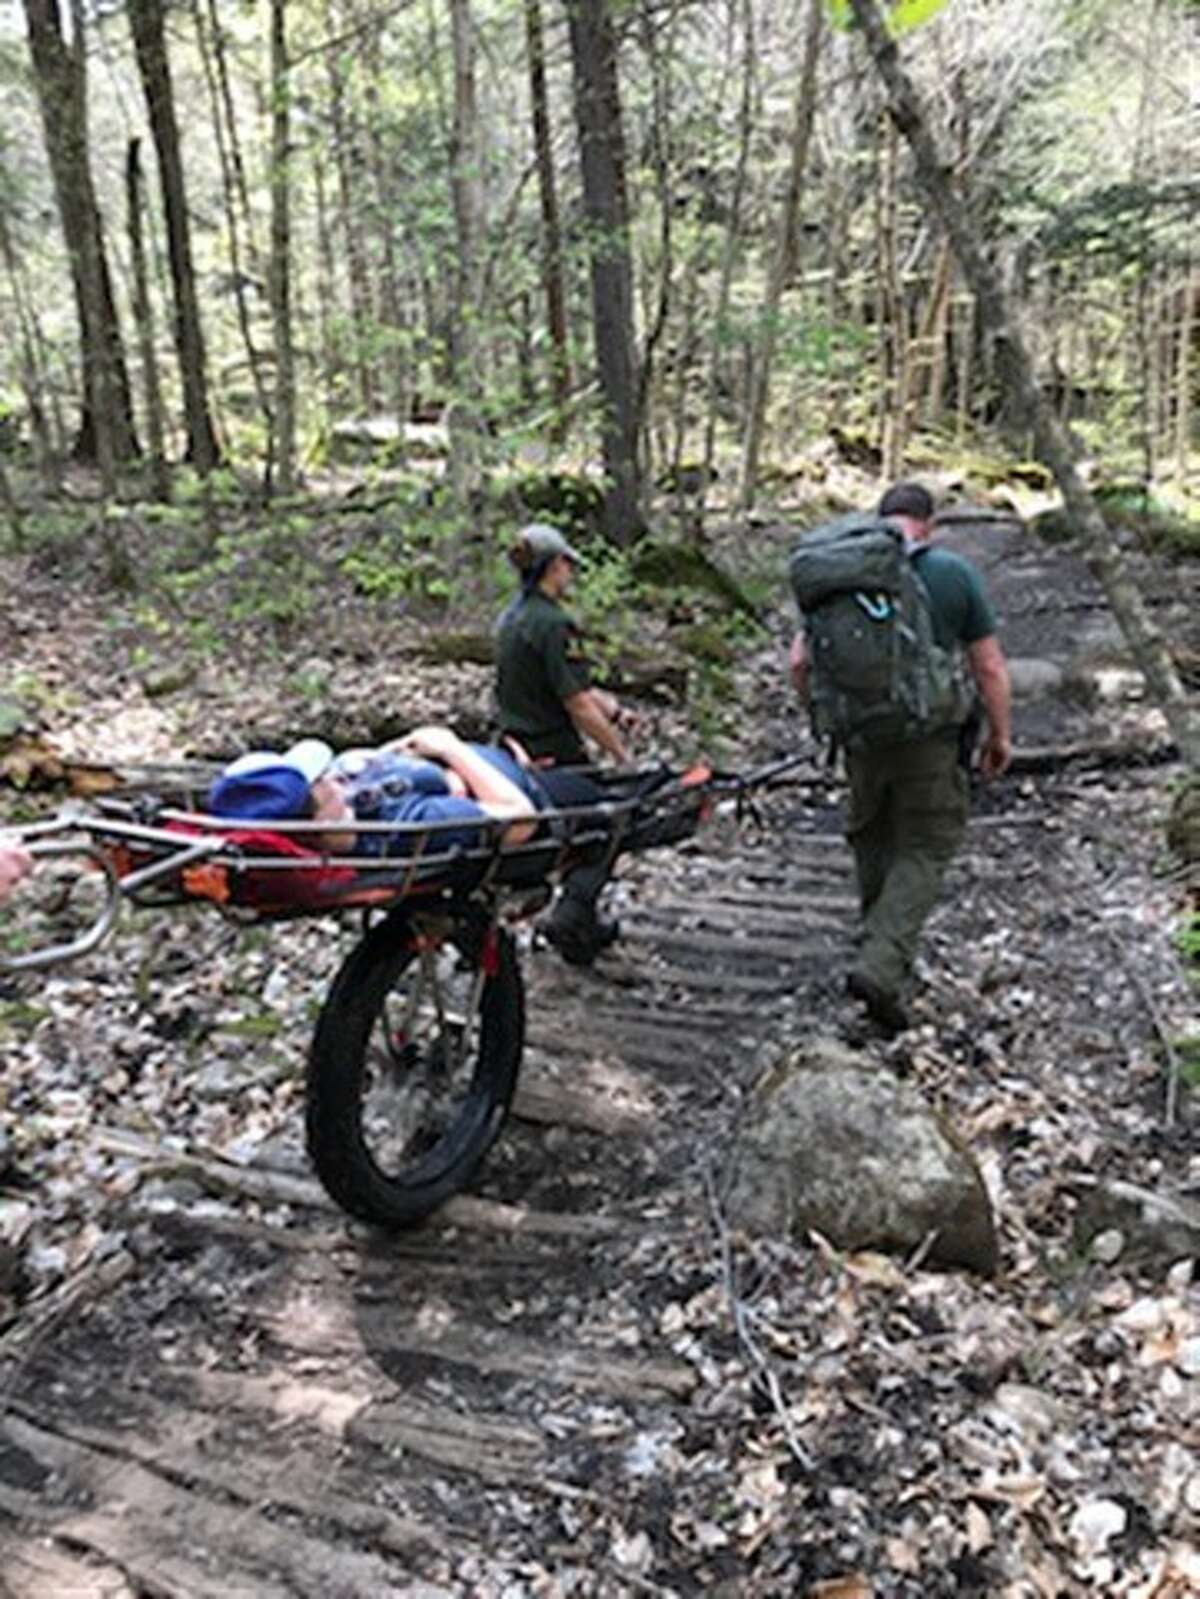 An injured hiker is taken off of Ampersand Mountain in the Adirondacks in a wheeled litter.